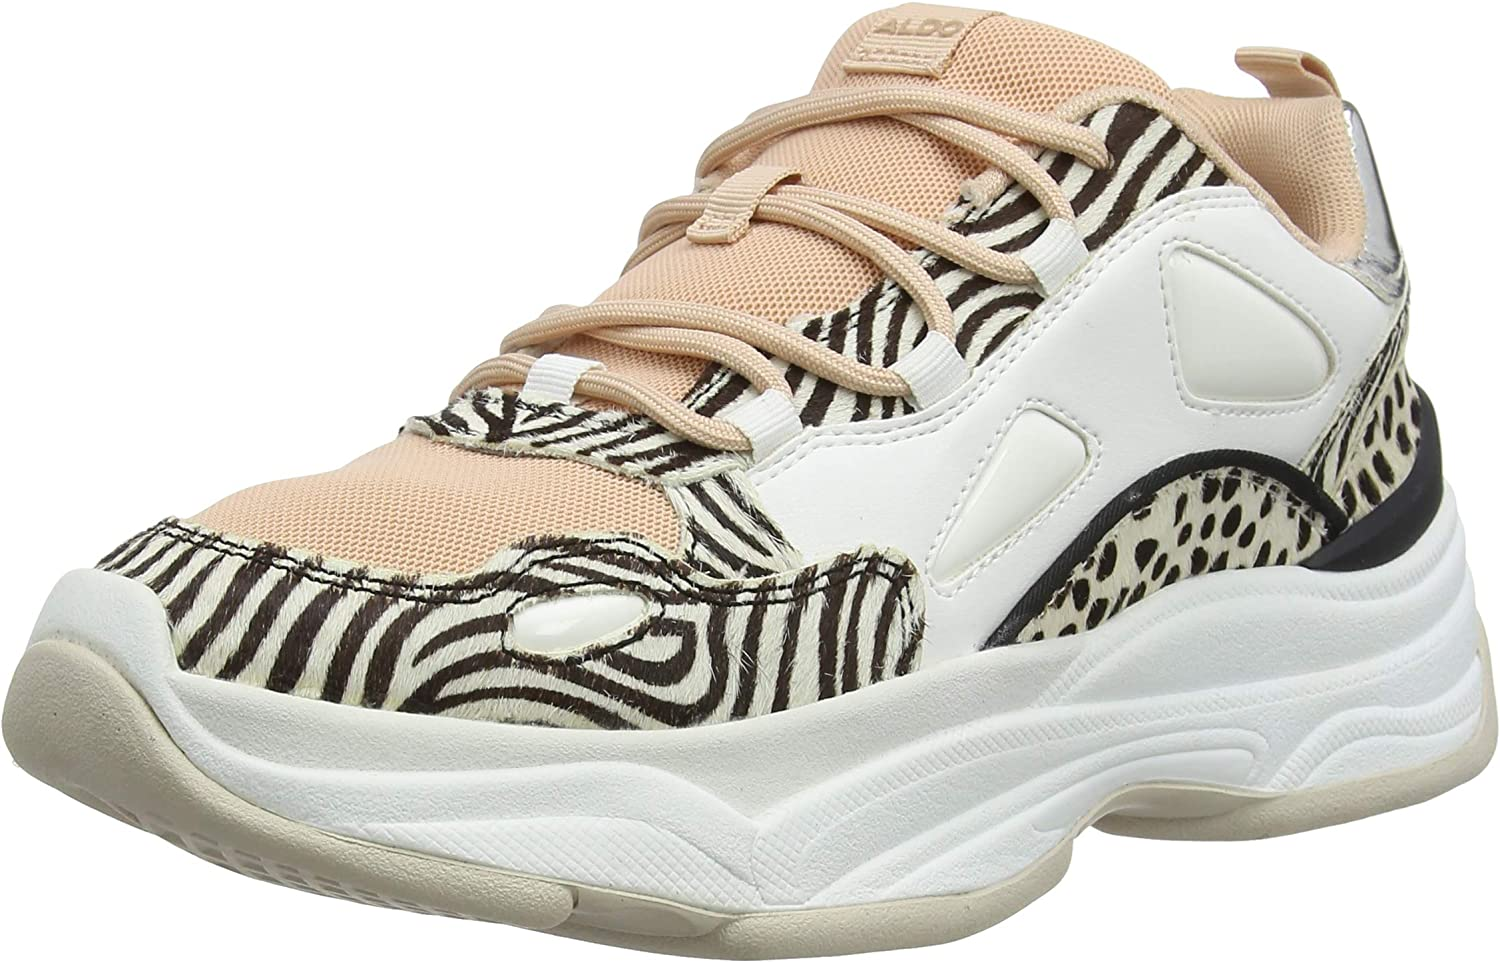 Aldo Women''s Umoavia Low-Top Sneakers